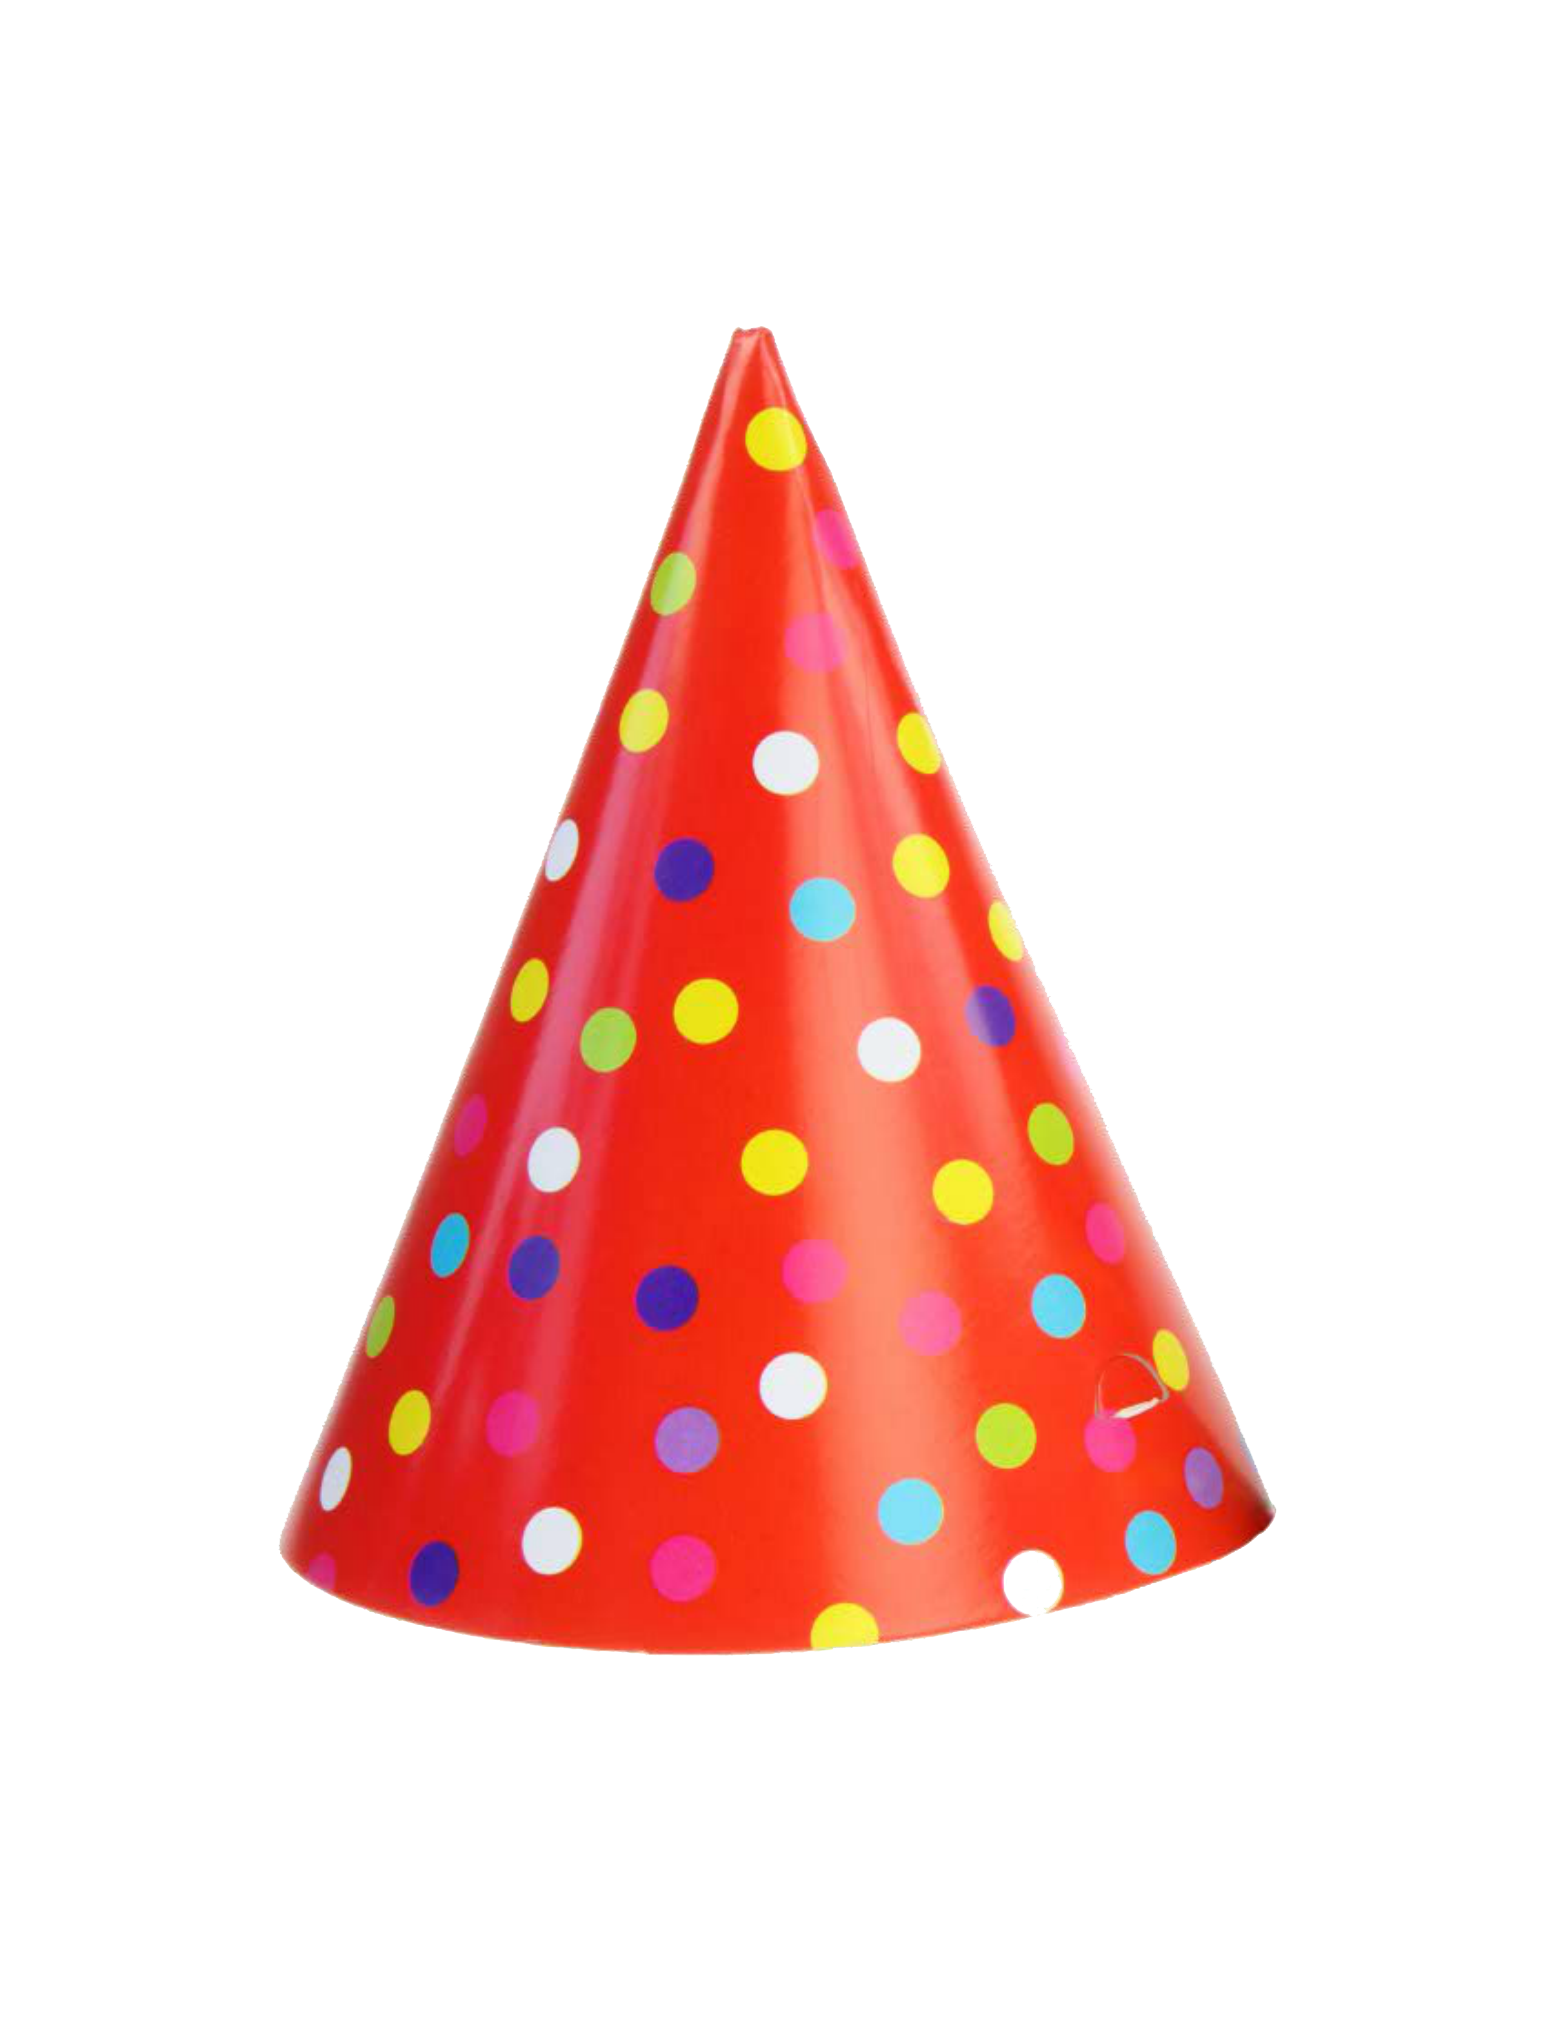 Party hats png. Red child hat file